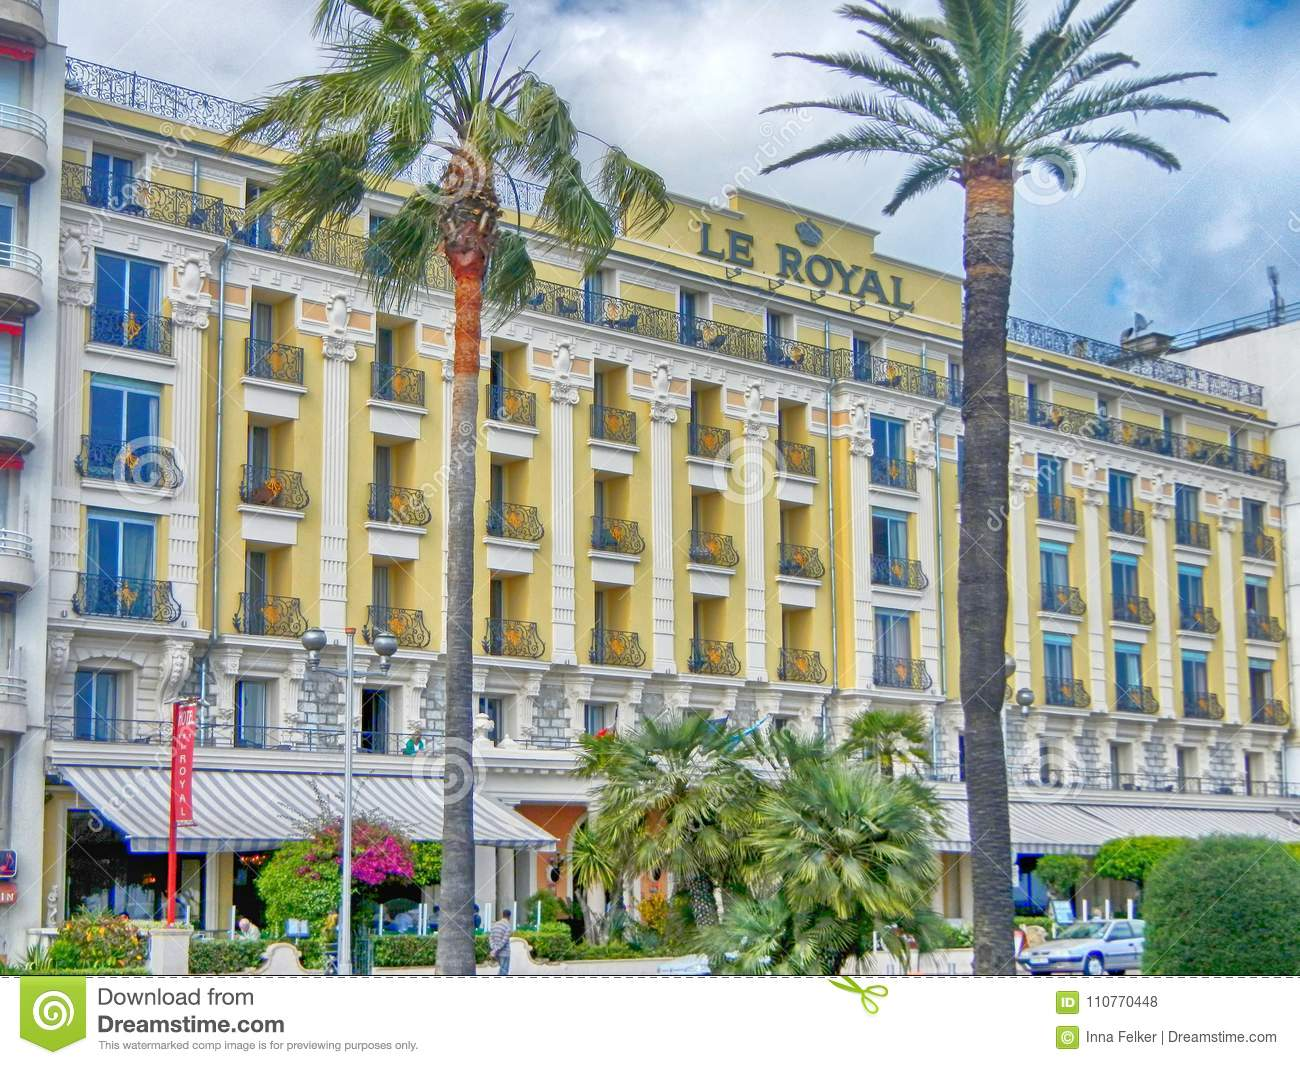 Le Royal, three stars Hotel in Nice, France